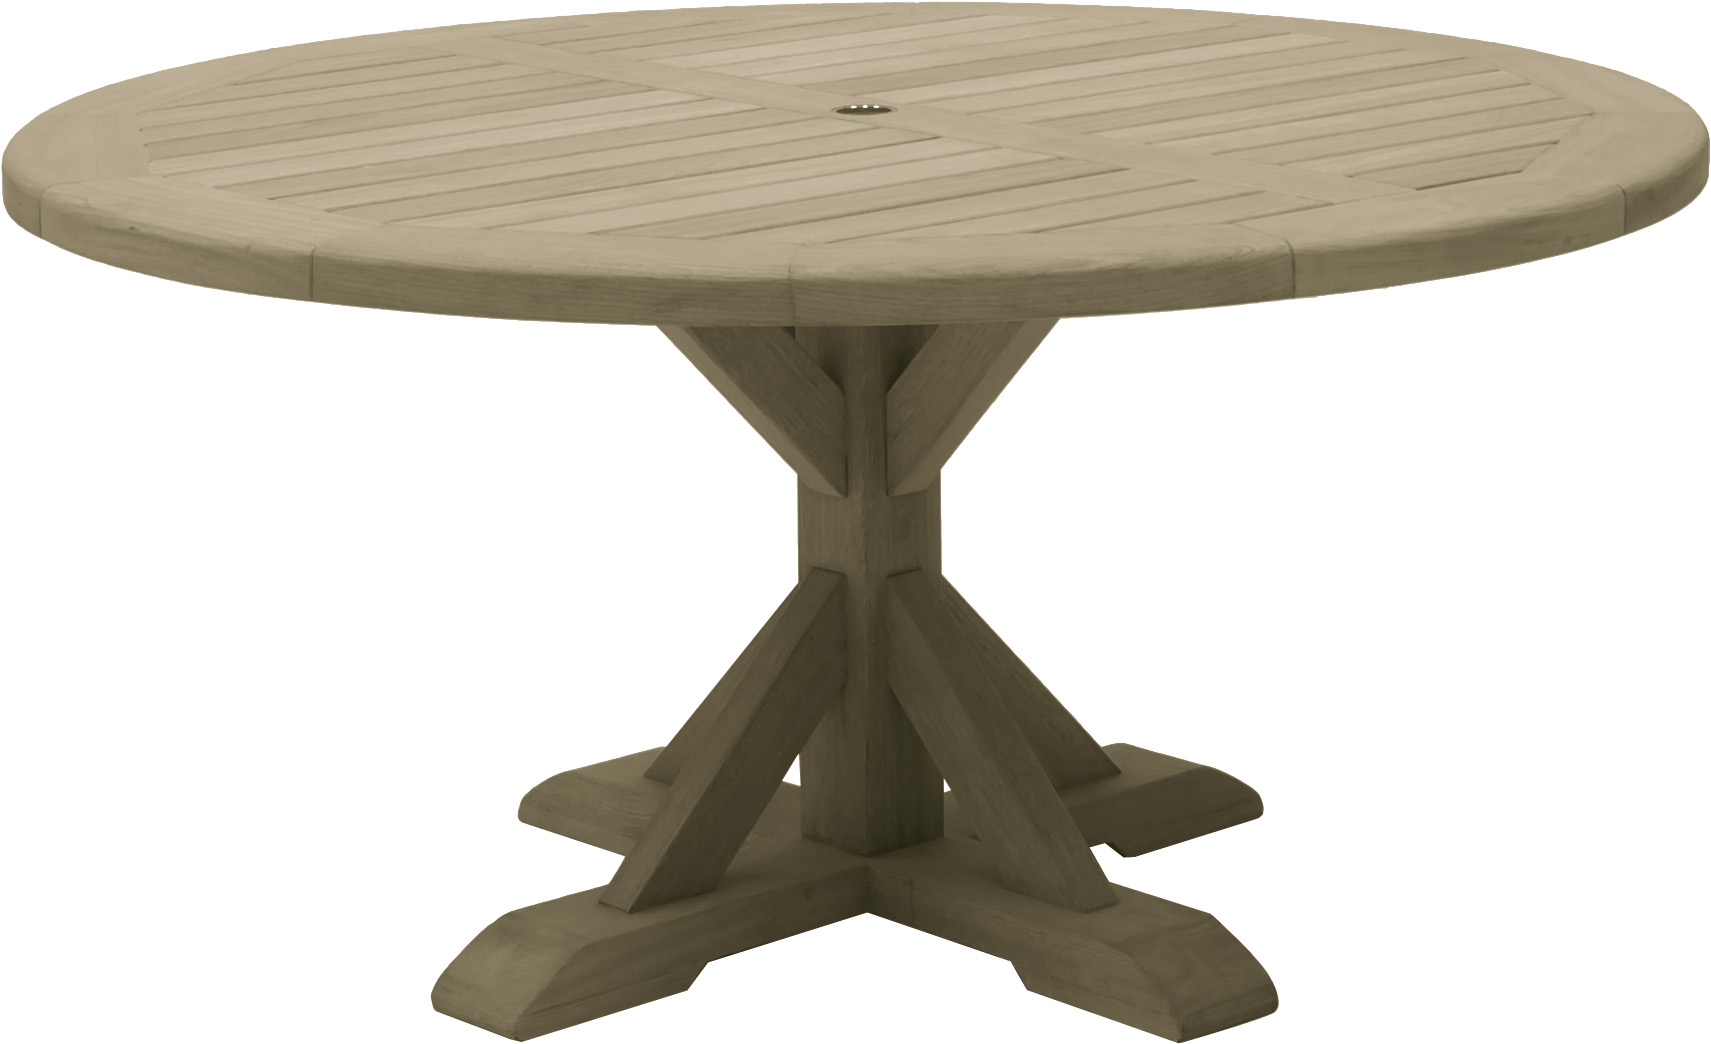 Bordeaux 6 Seater Table